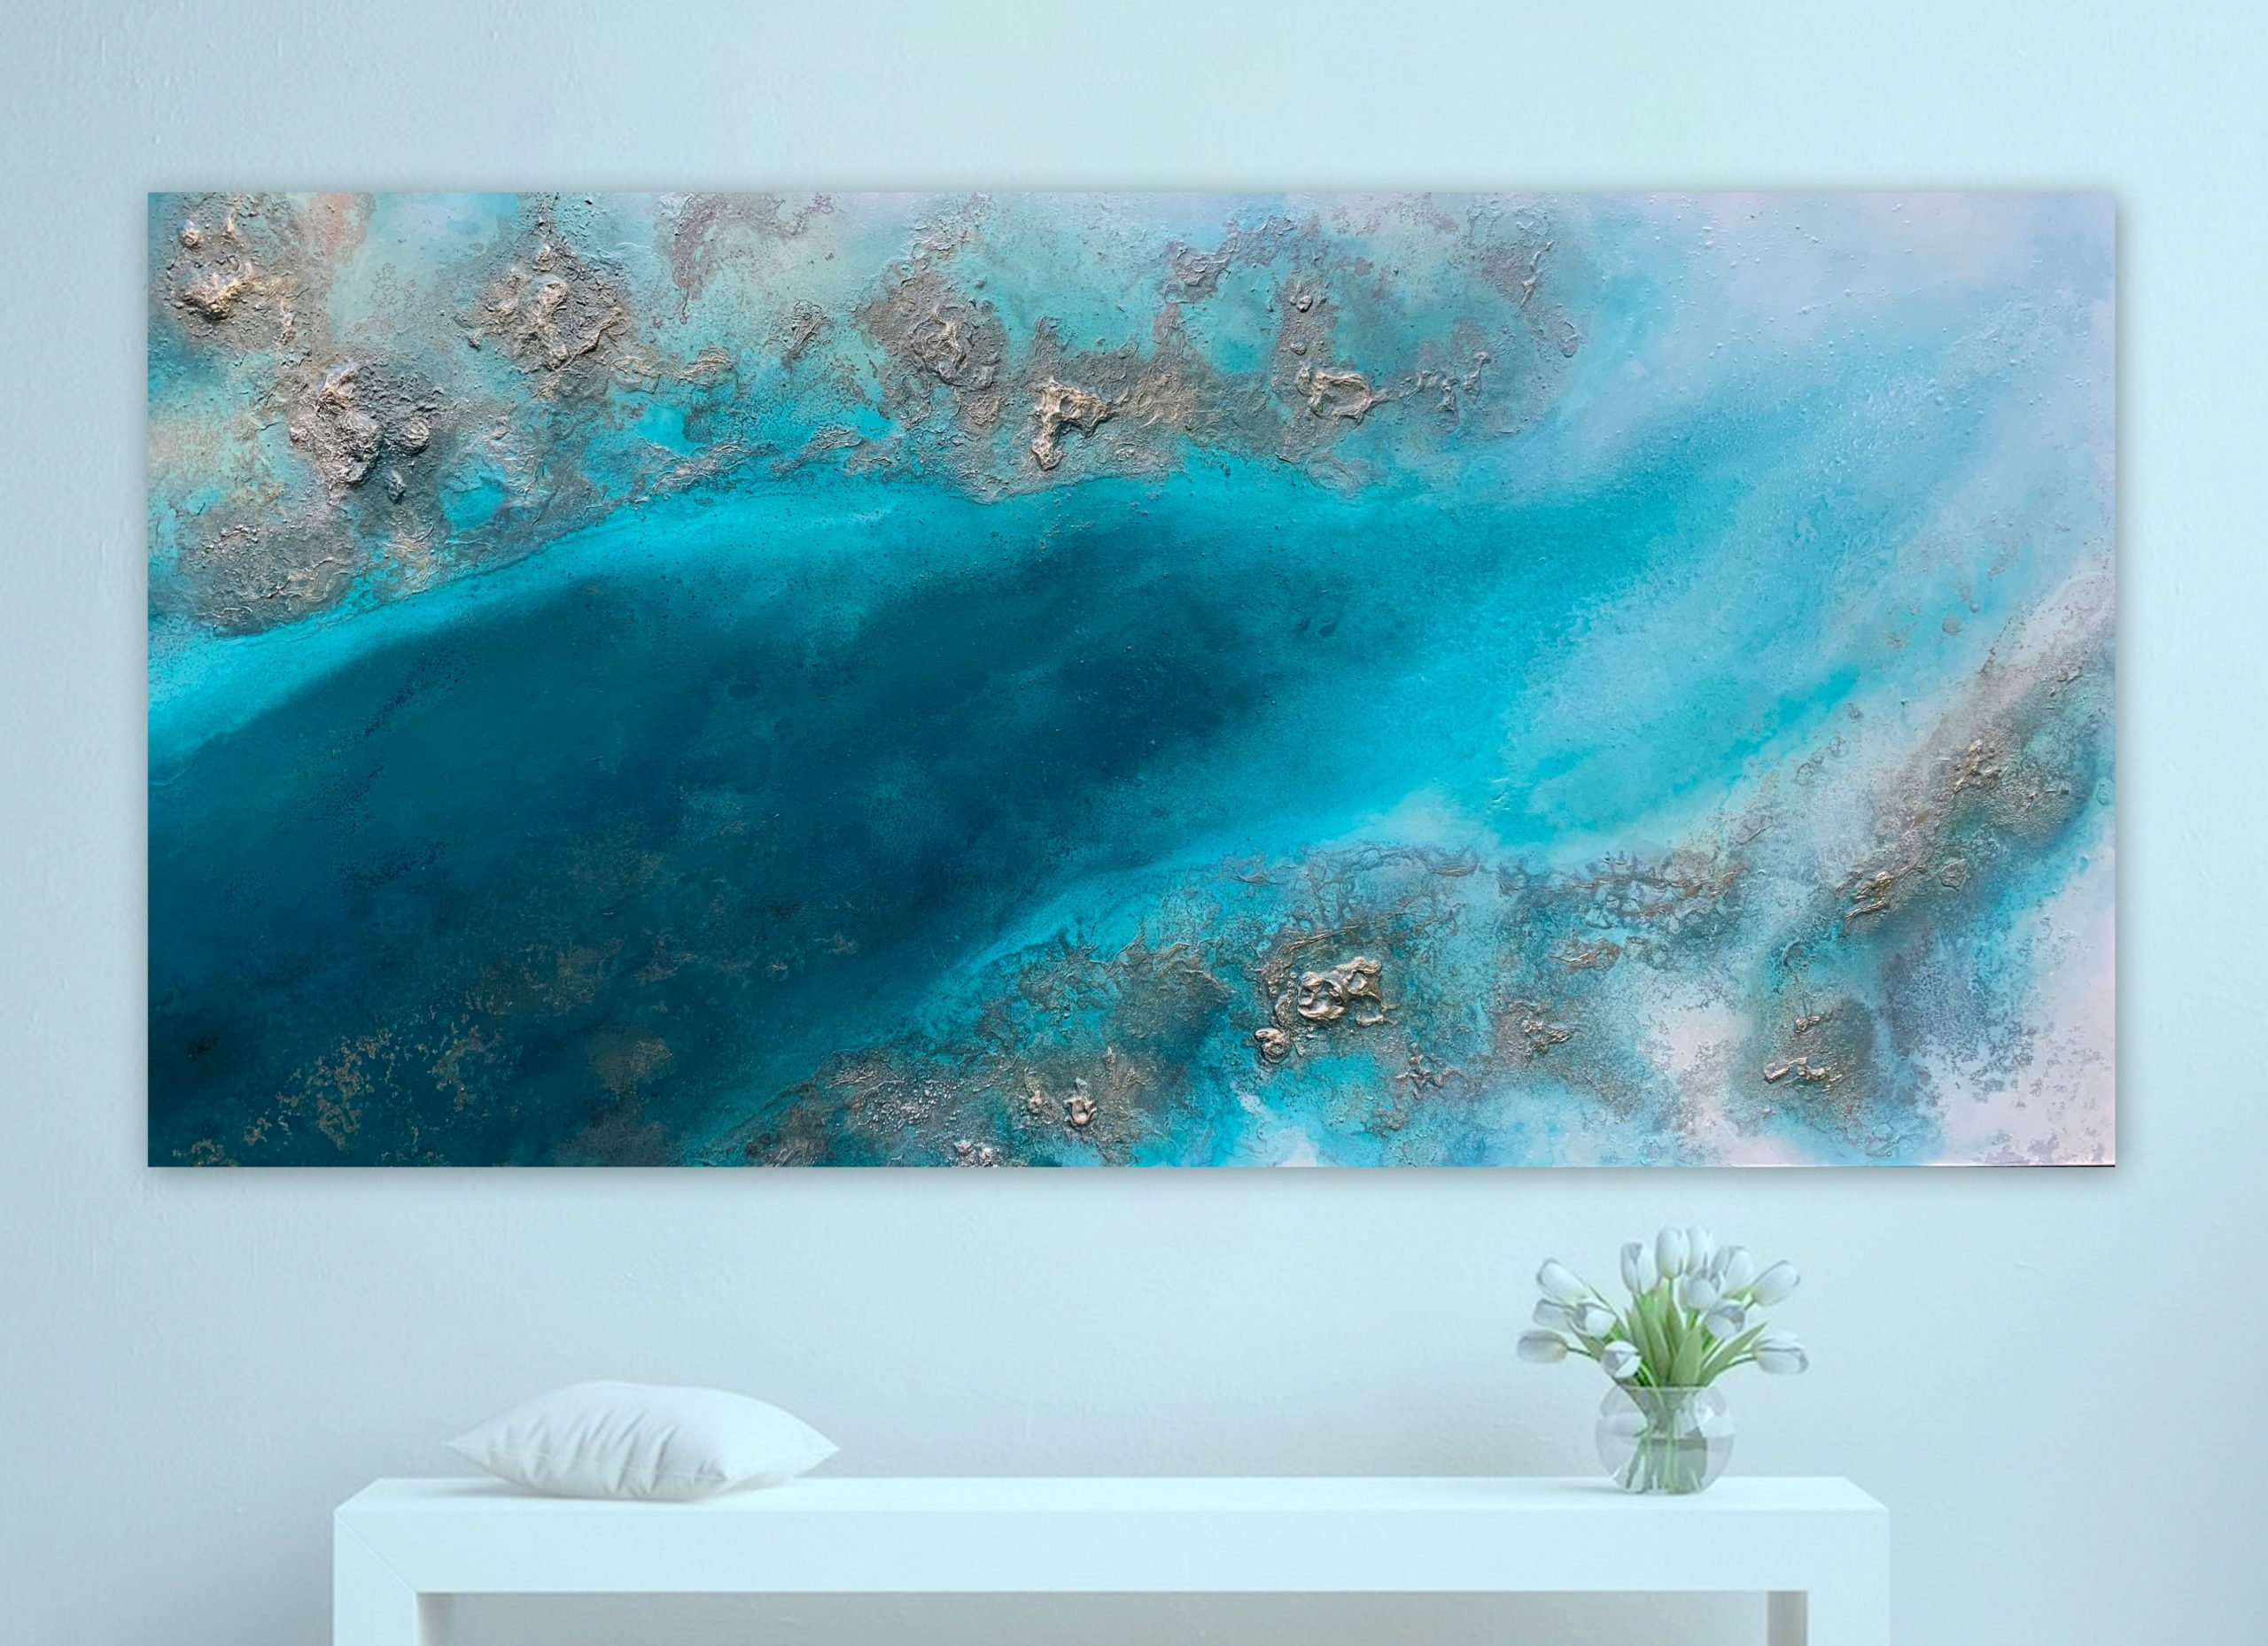 Large Teal Abstract Wall Art By Petra Meikle De Vlas2